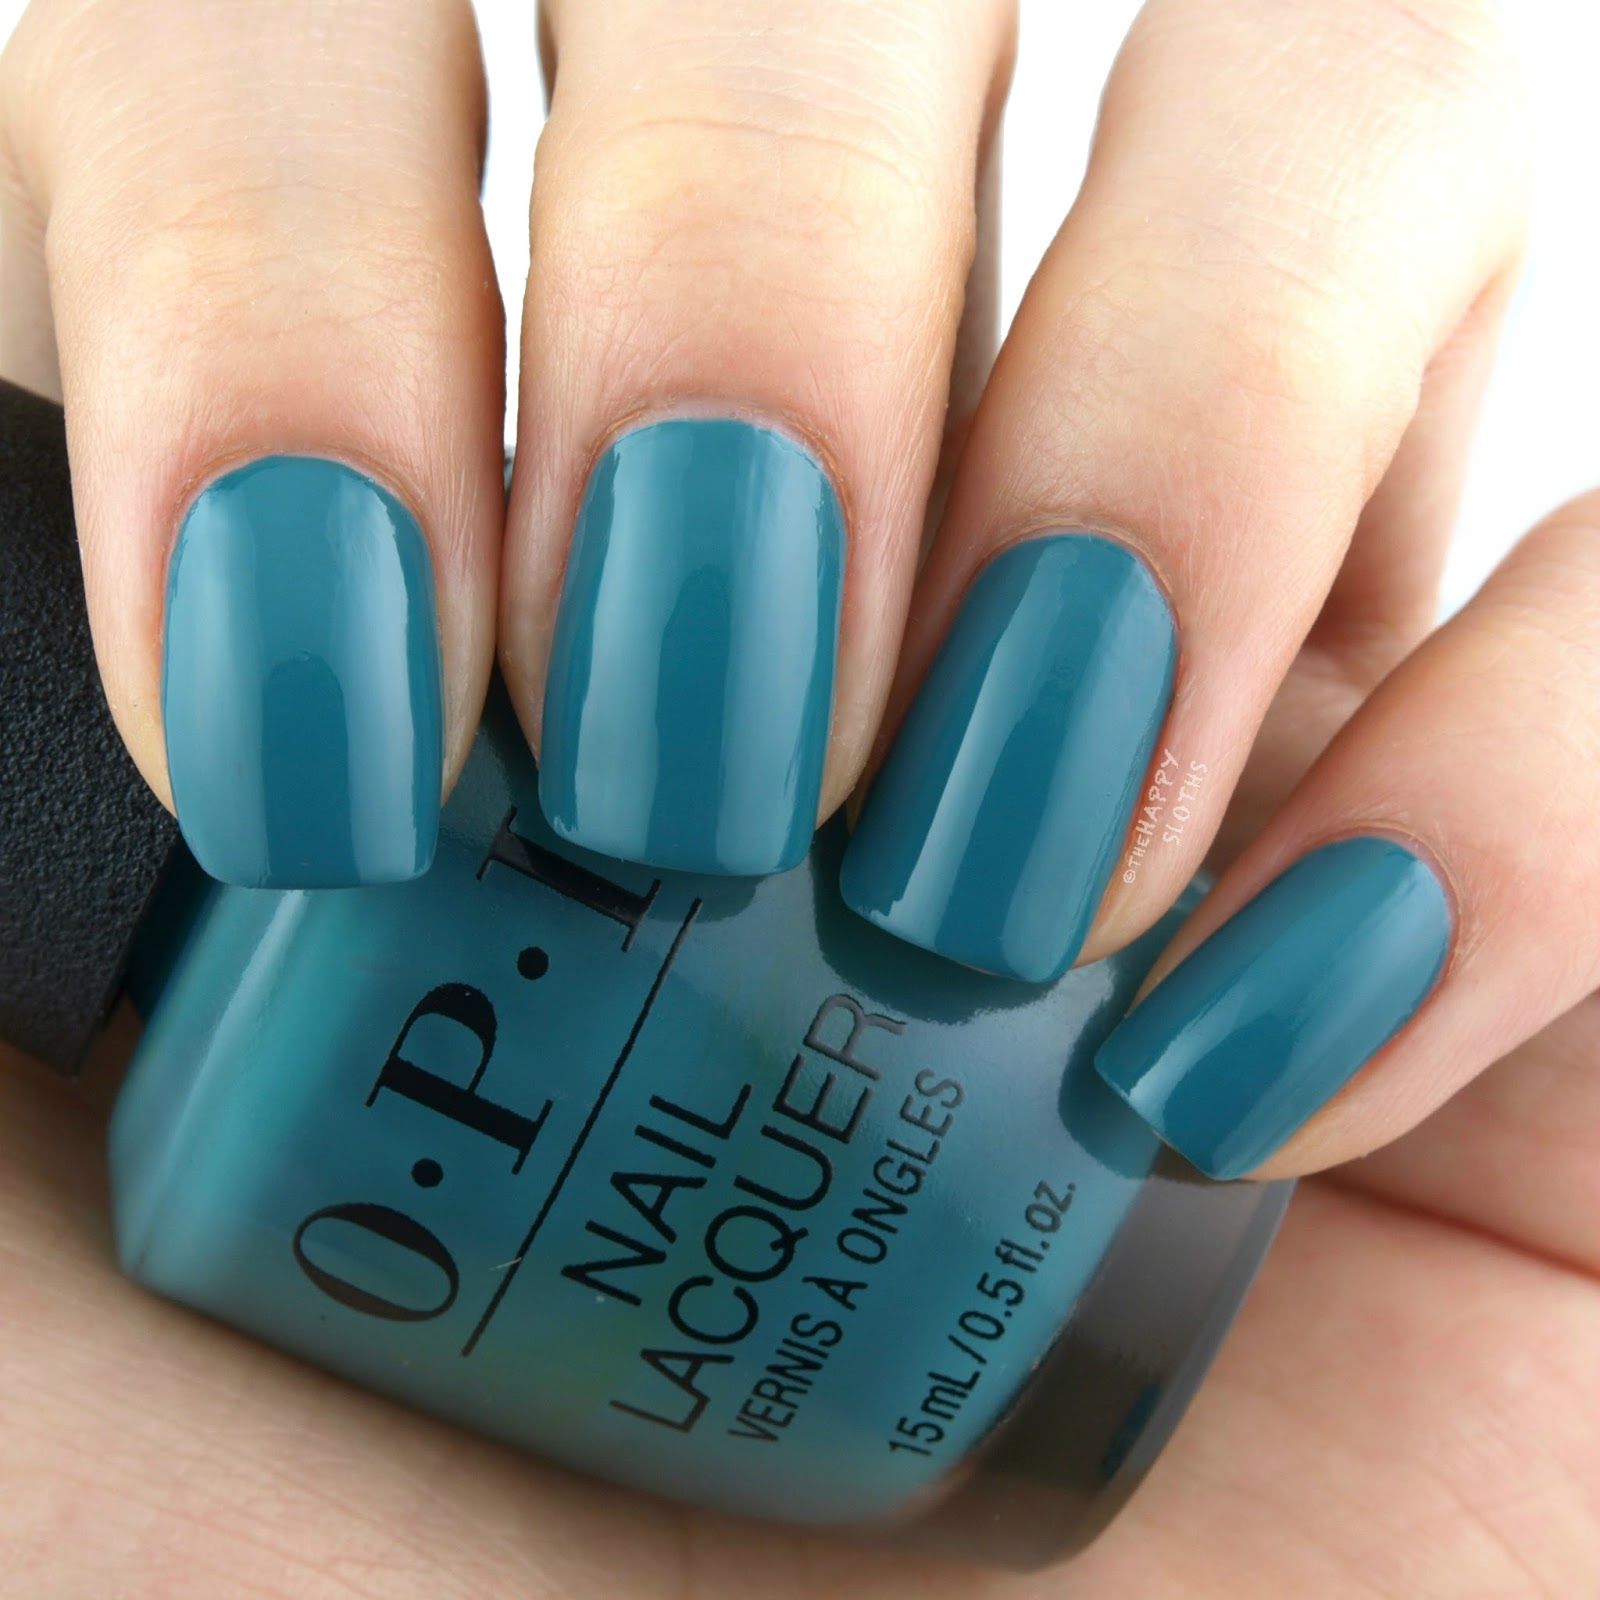 OPI Grease Collection | Teal Me More, Teal Me More: Review and Swatches